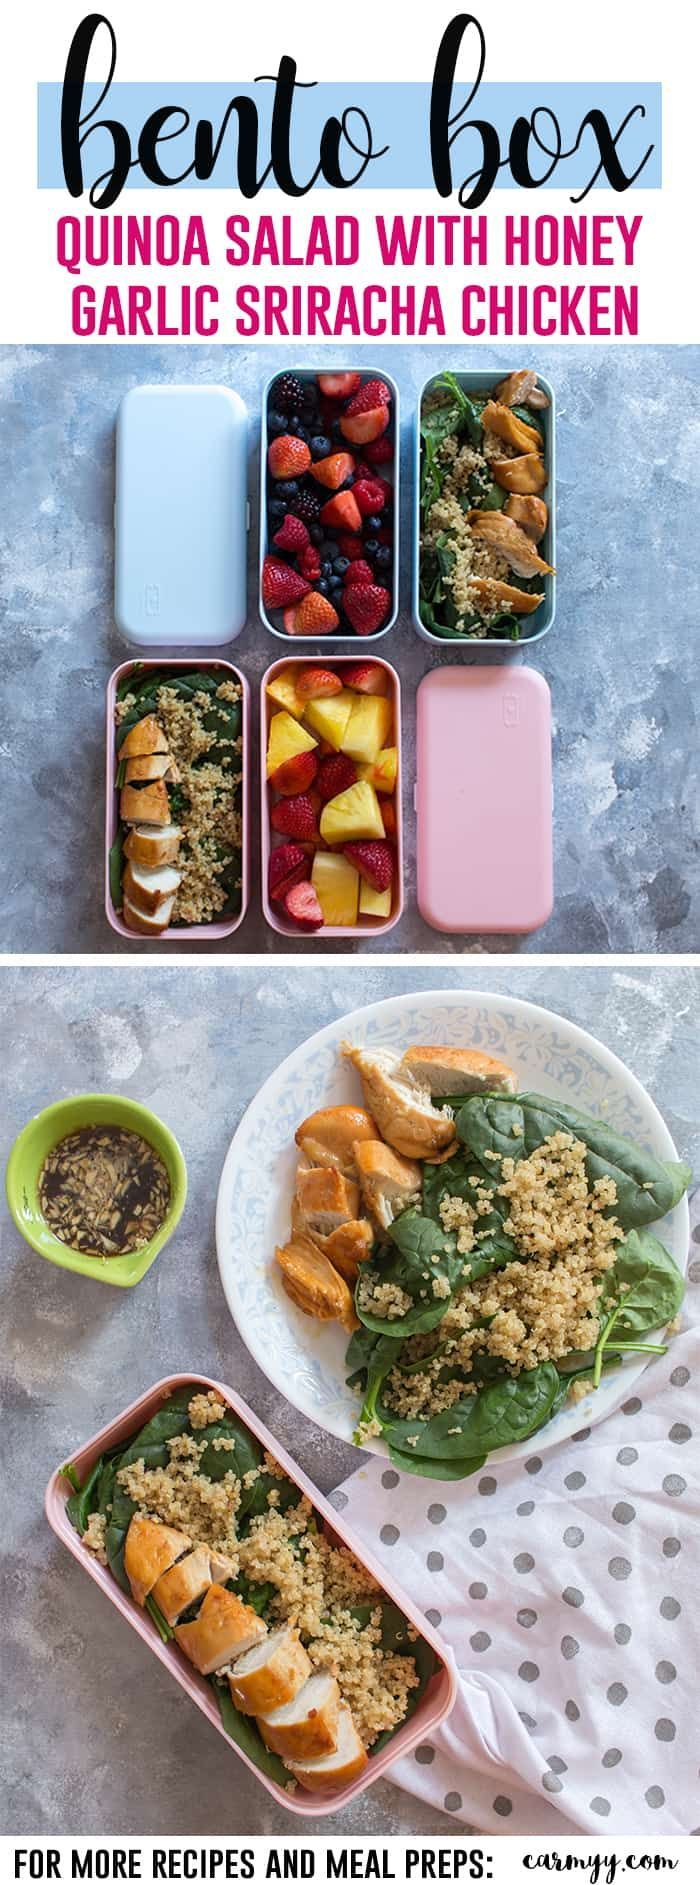 A delicious quinoa salad with honey garlic sriracha chicken that takes less than 40 minutes to make. This meal prep idea will get you excited for lunch time during your work week!  via @runcarmyrun #recipe #mealprep #fastlunch #chicken